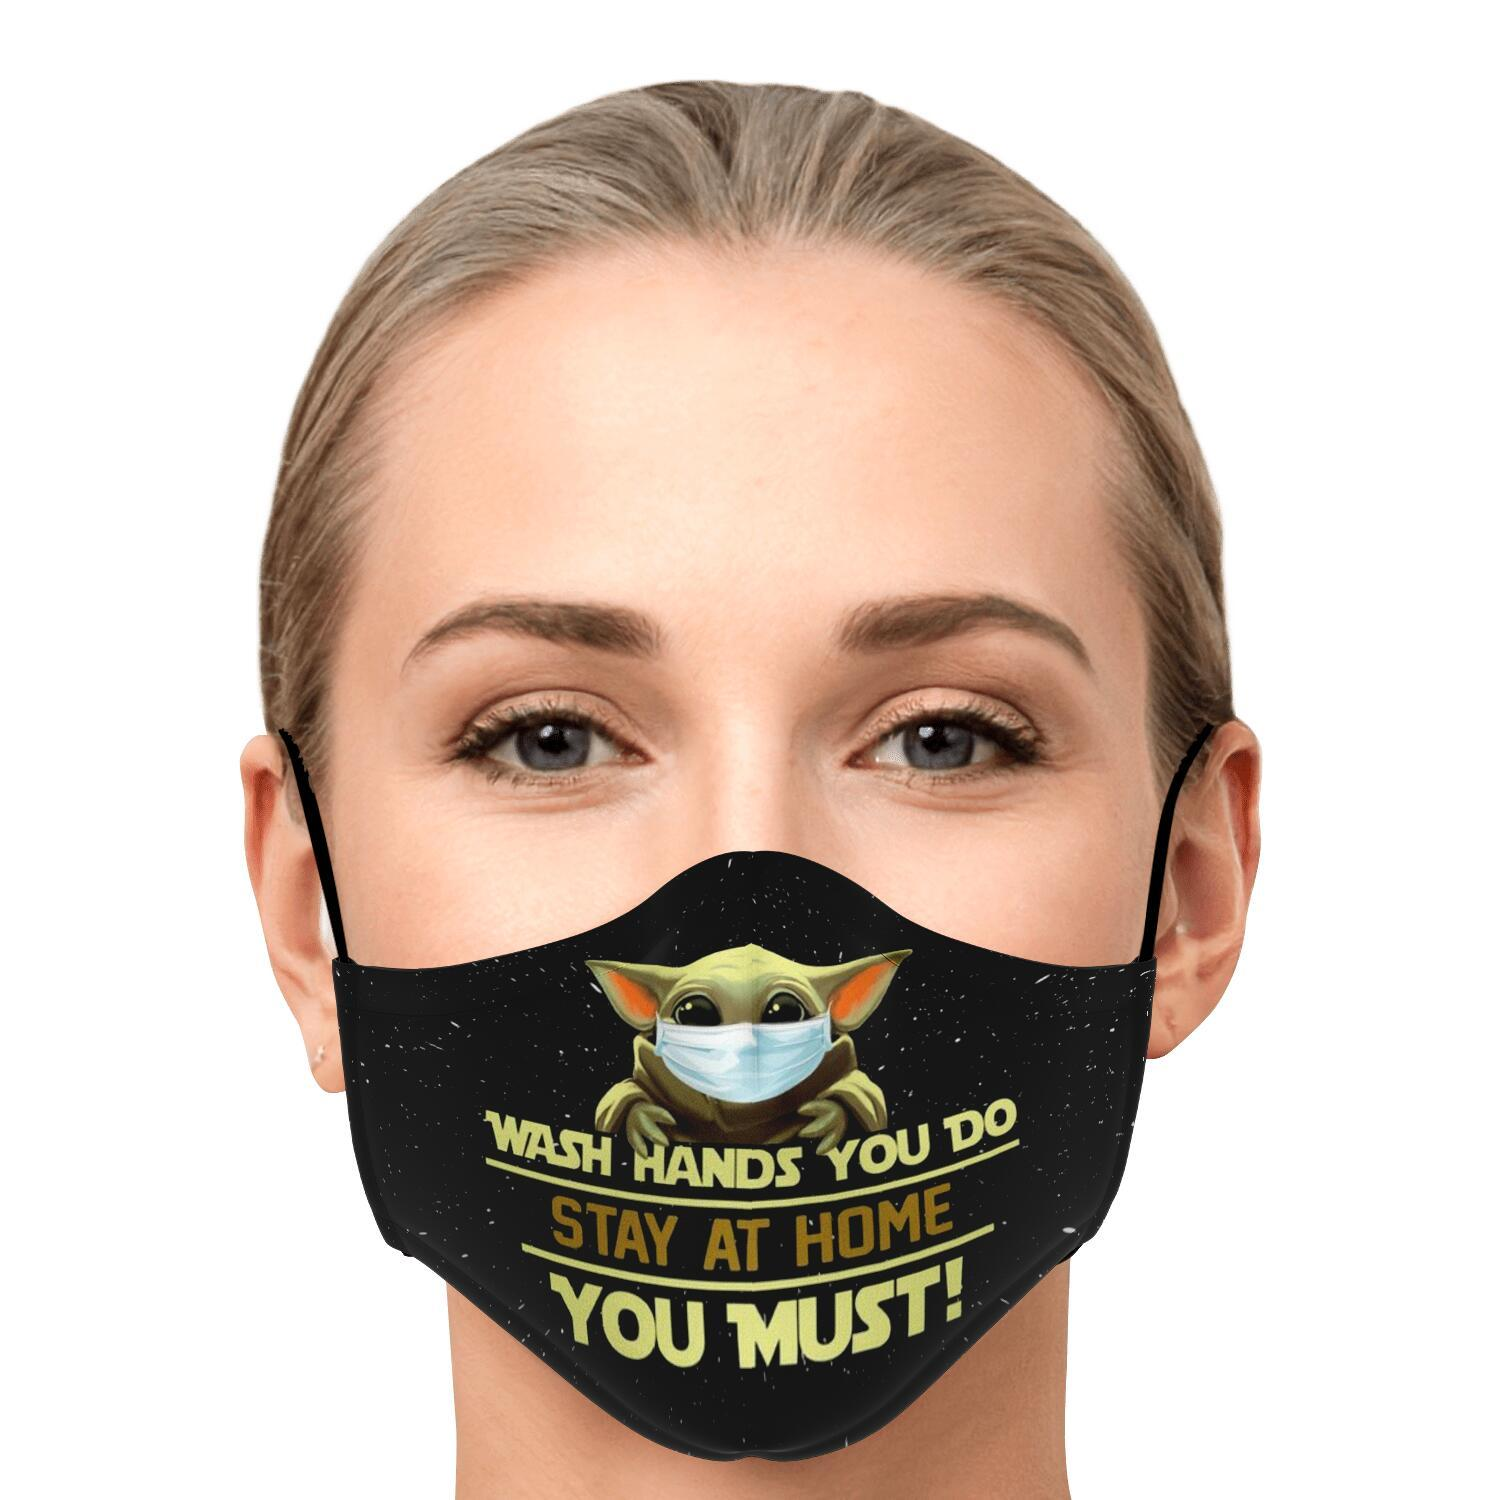 Wash Hand You Do Stay At Home You Must Baby Yoda Face Mask 1